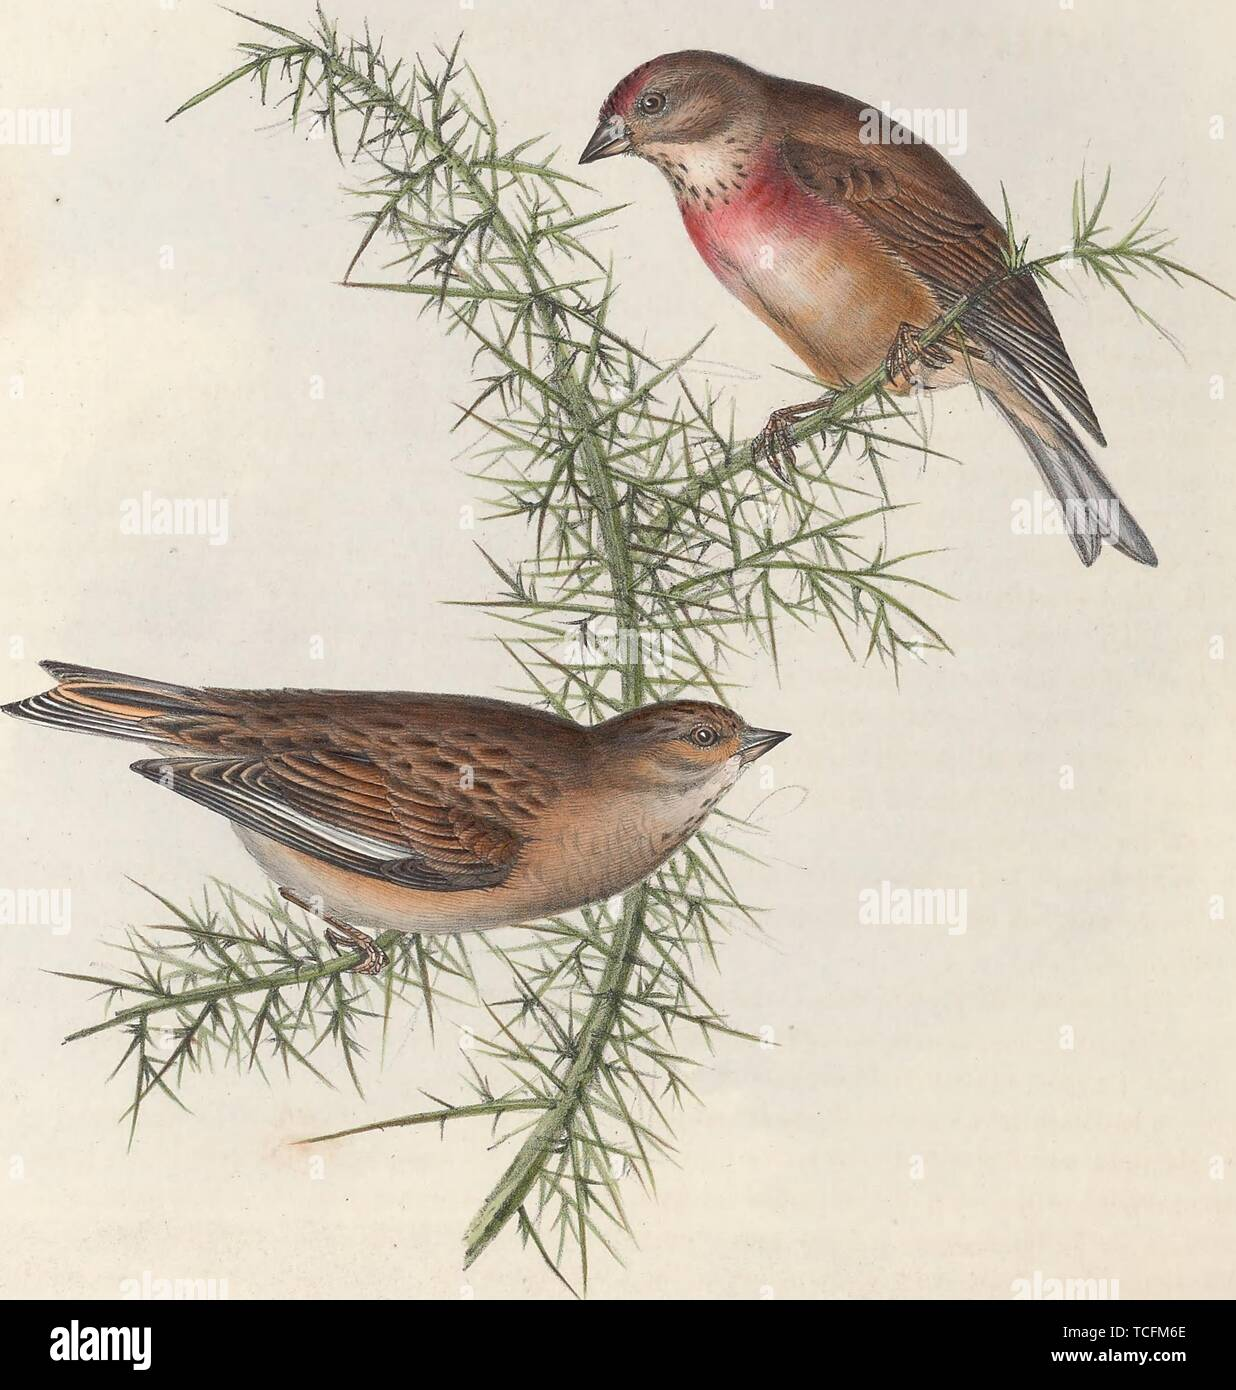 Engraved drawing of the Common Linnets (Linaria cannabina), from the book 'The birds of Europe' by John Gould, 1837. Courtesy Internet Archive. () - Stock Image